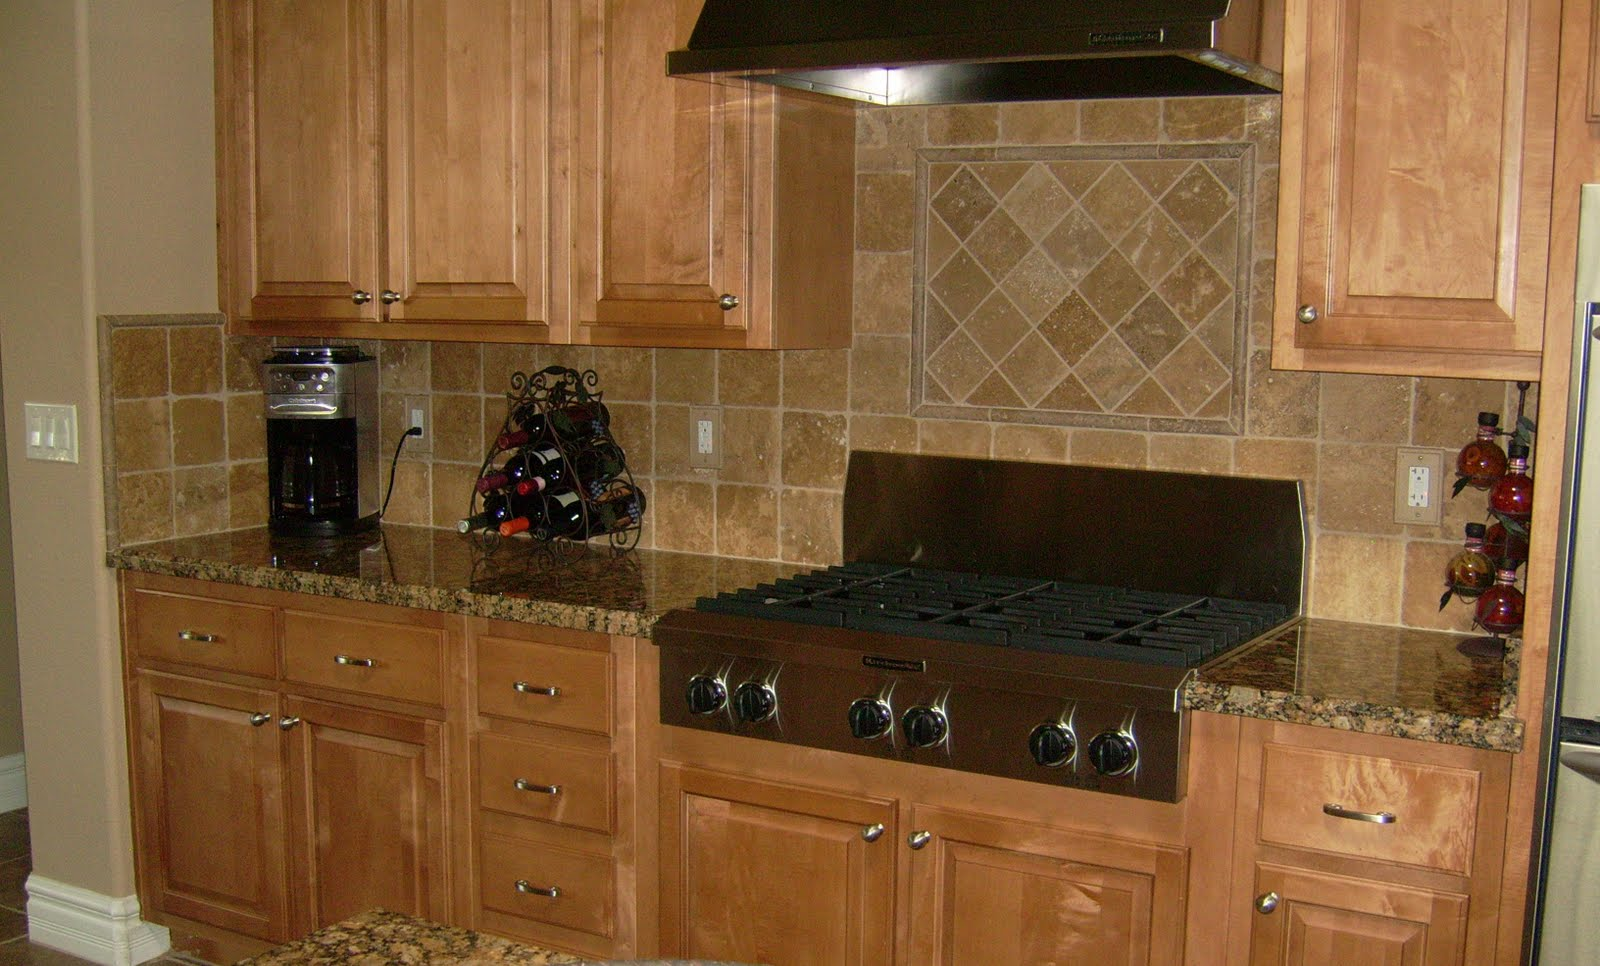 kitchen backsplash ideas tumbled stone kitchen backsplash ideas kitchen designs ideas set property kitchen backsplash images